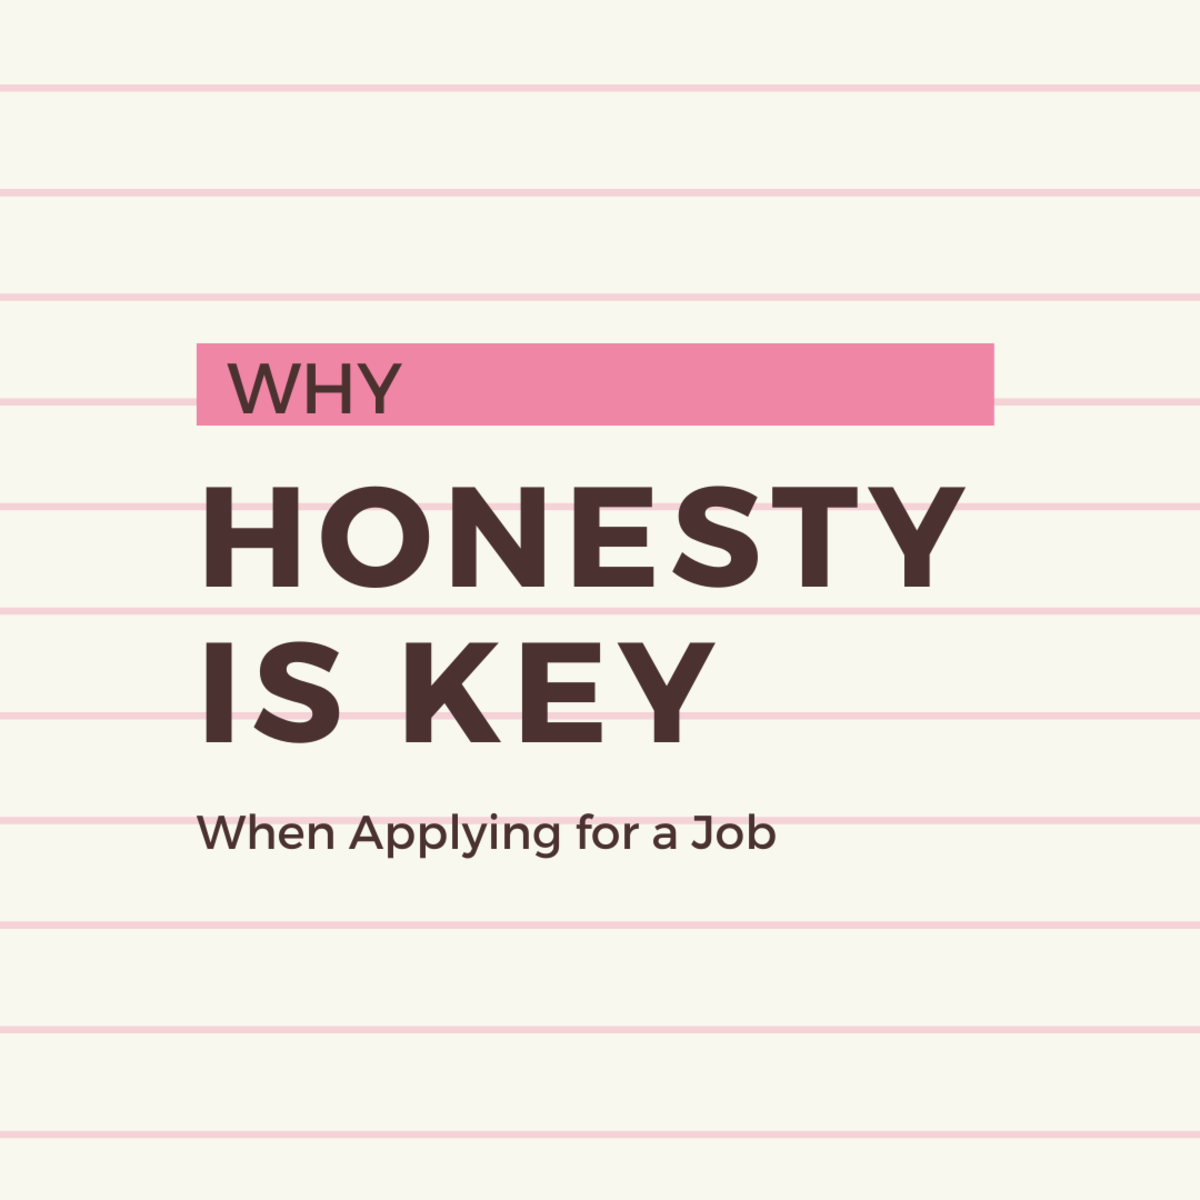 Why Applicants Should Be Honest on a Job Application